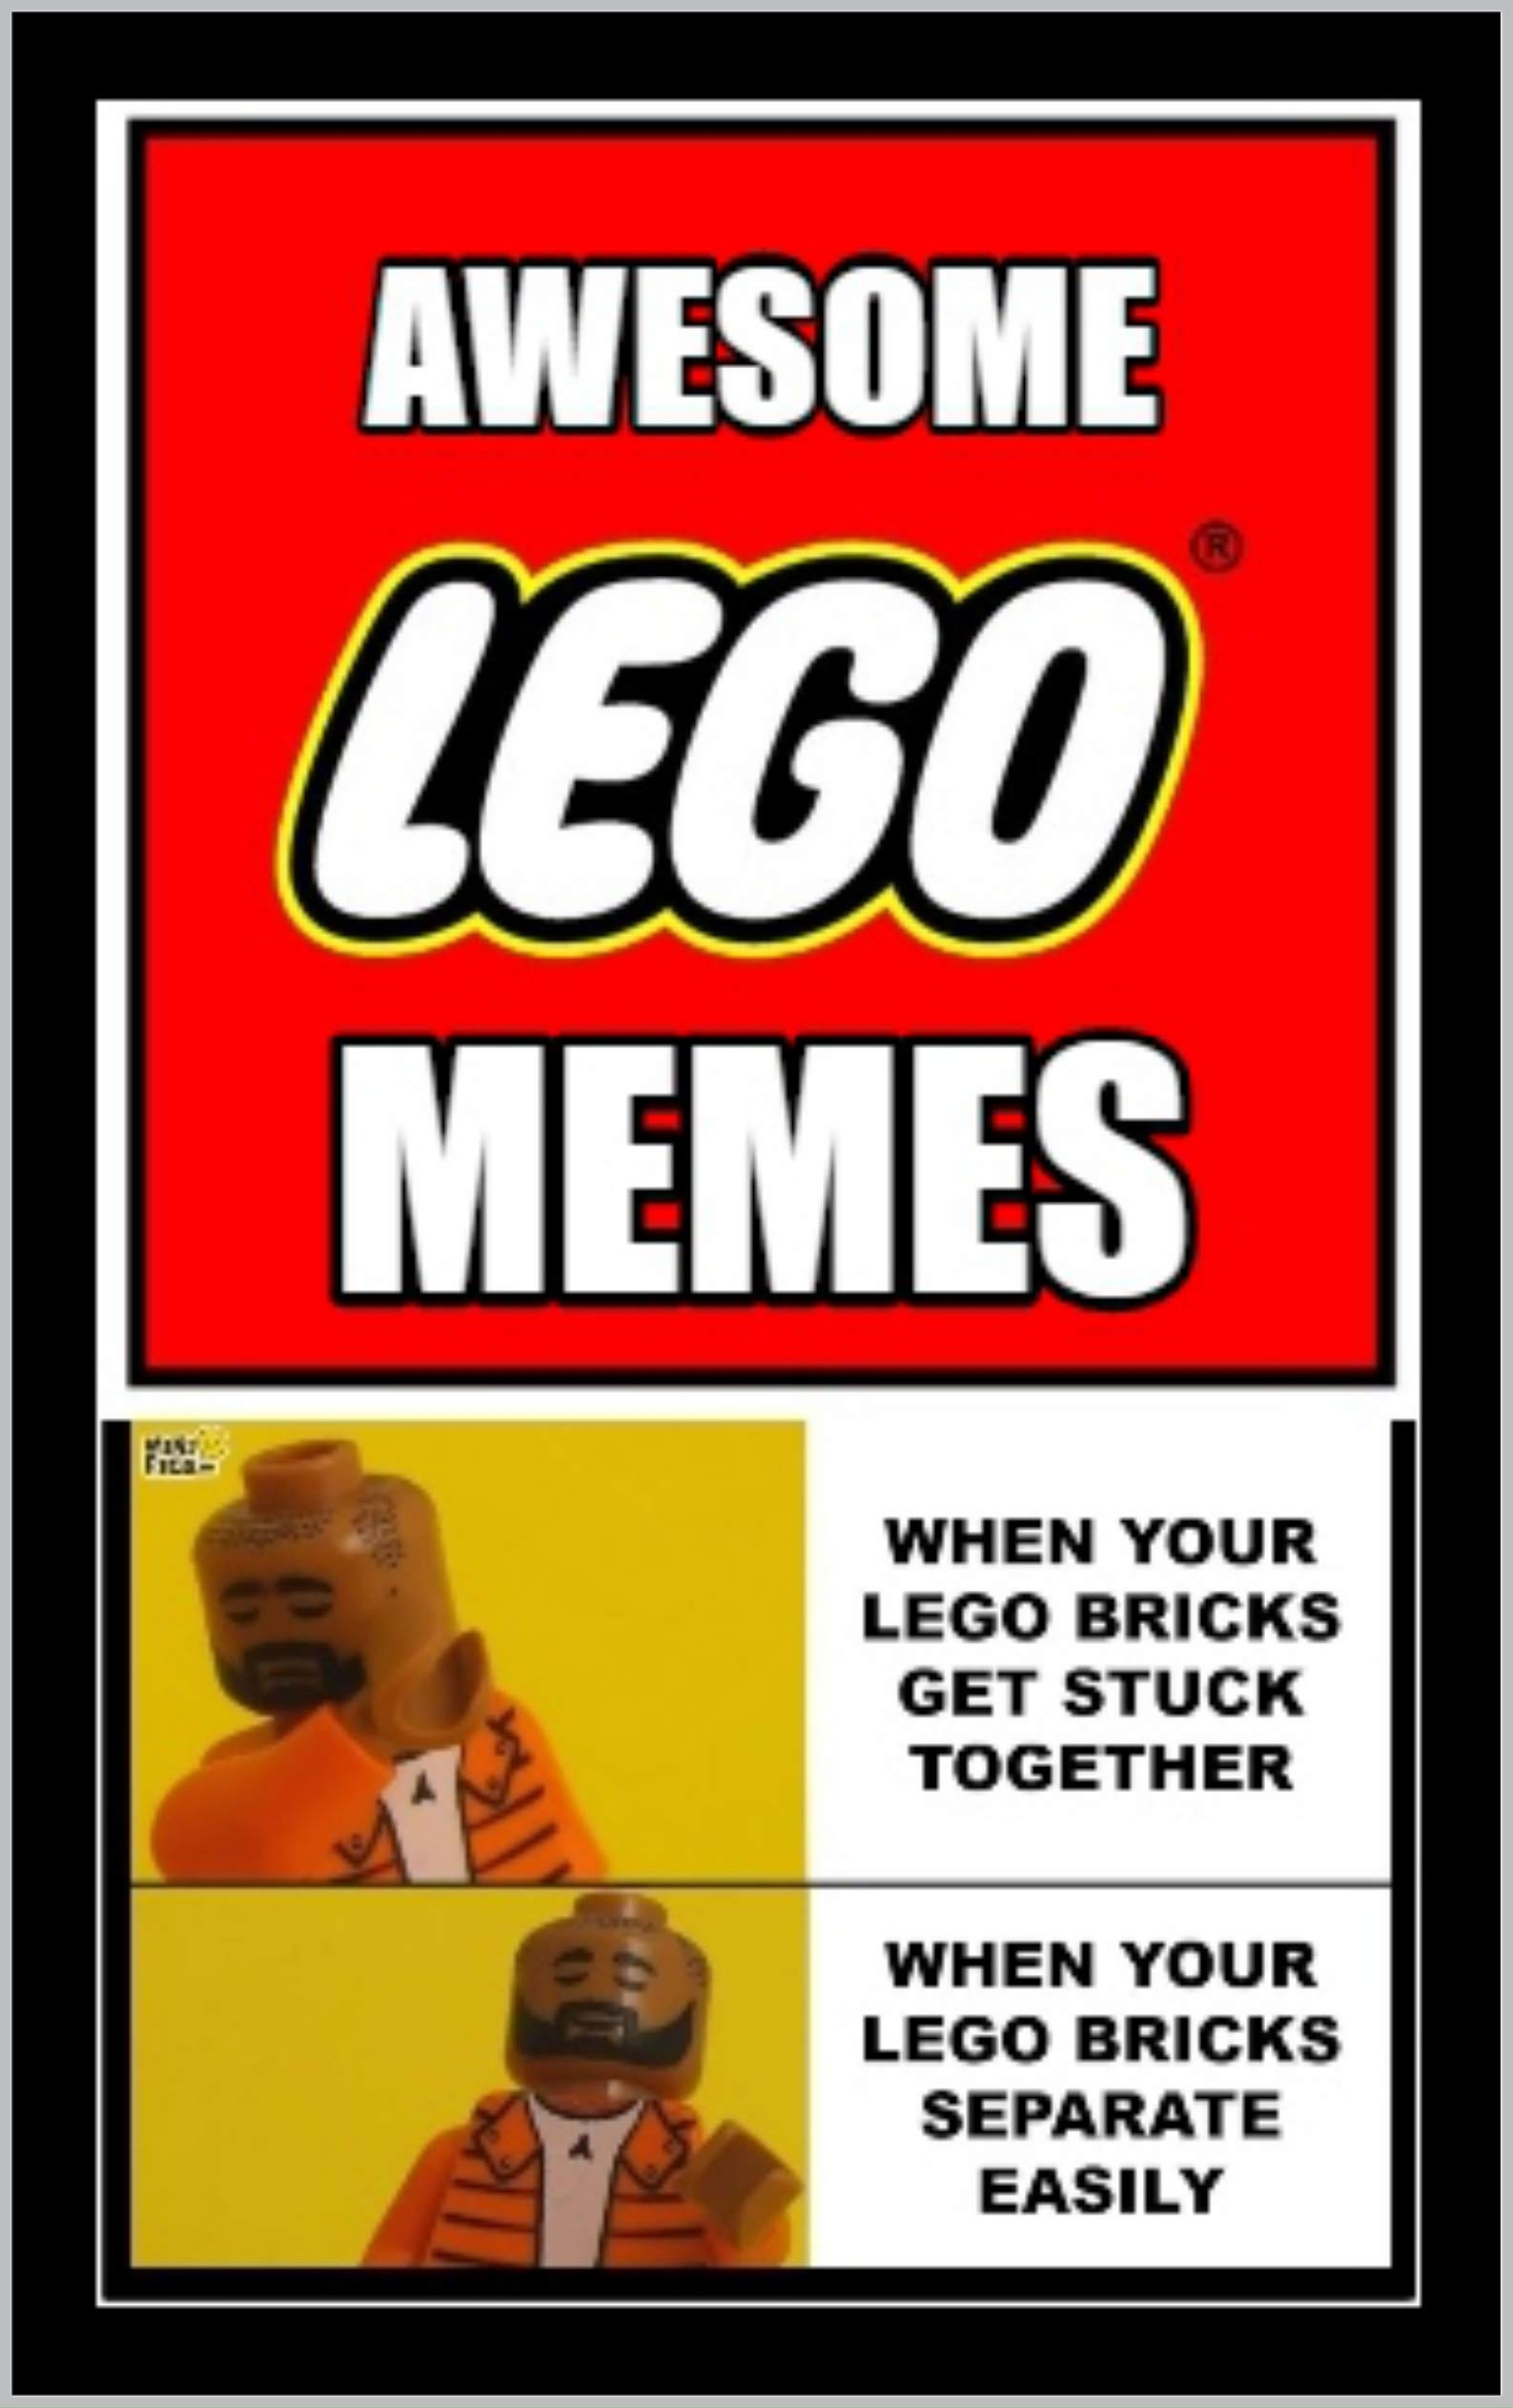 Lego Meems Book With Loads Dank Meems Jokes And Comedy - Epic Funny Book For Lego Lovers